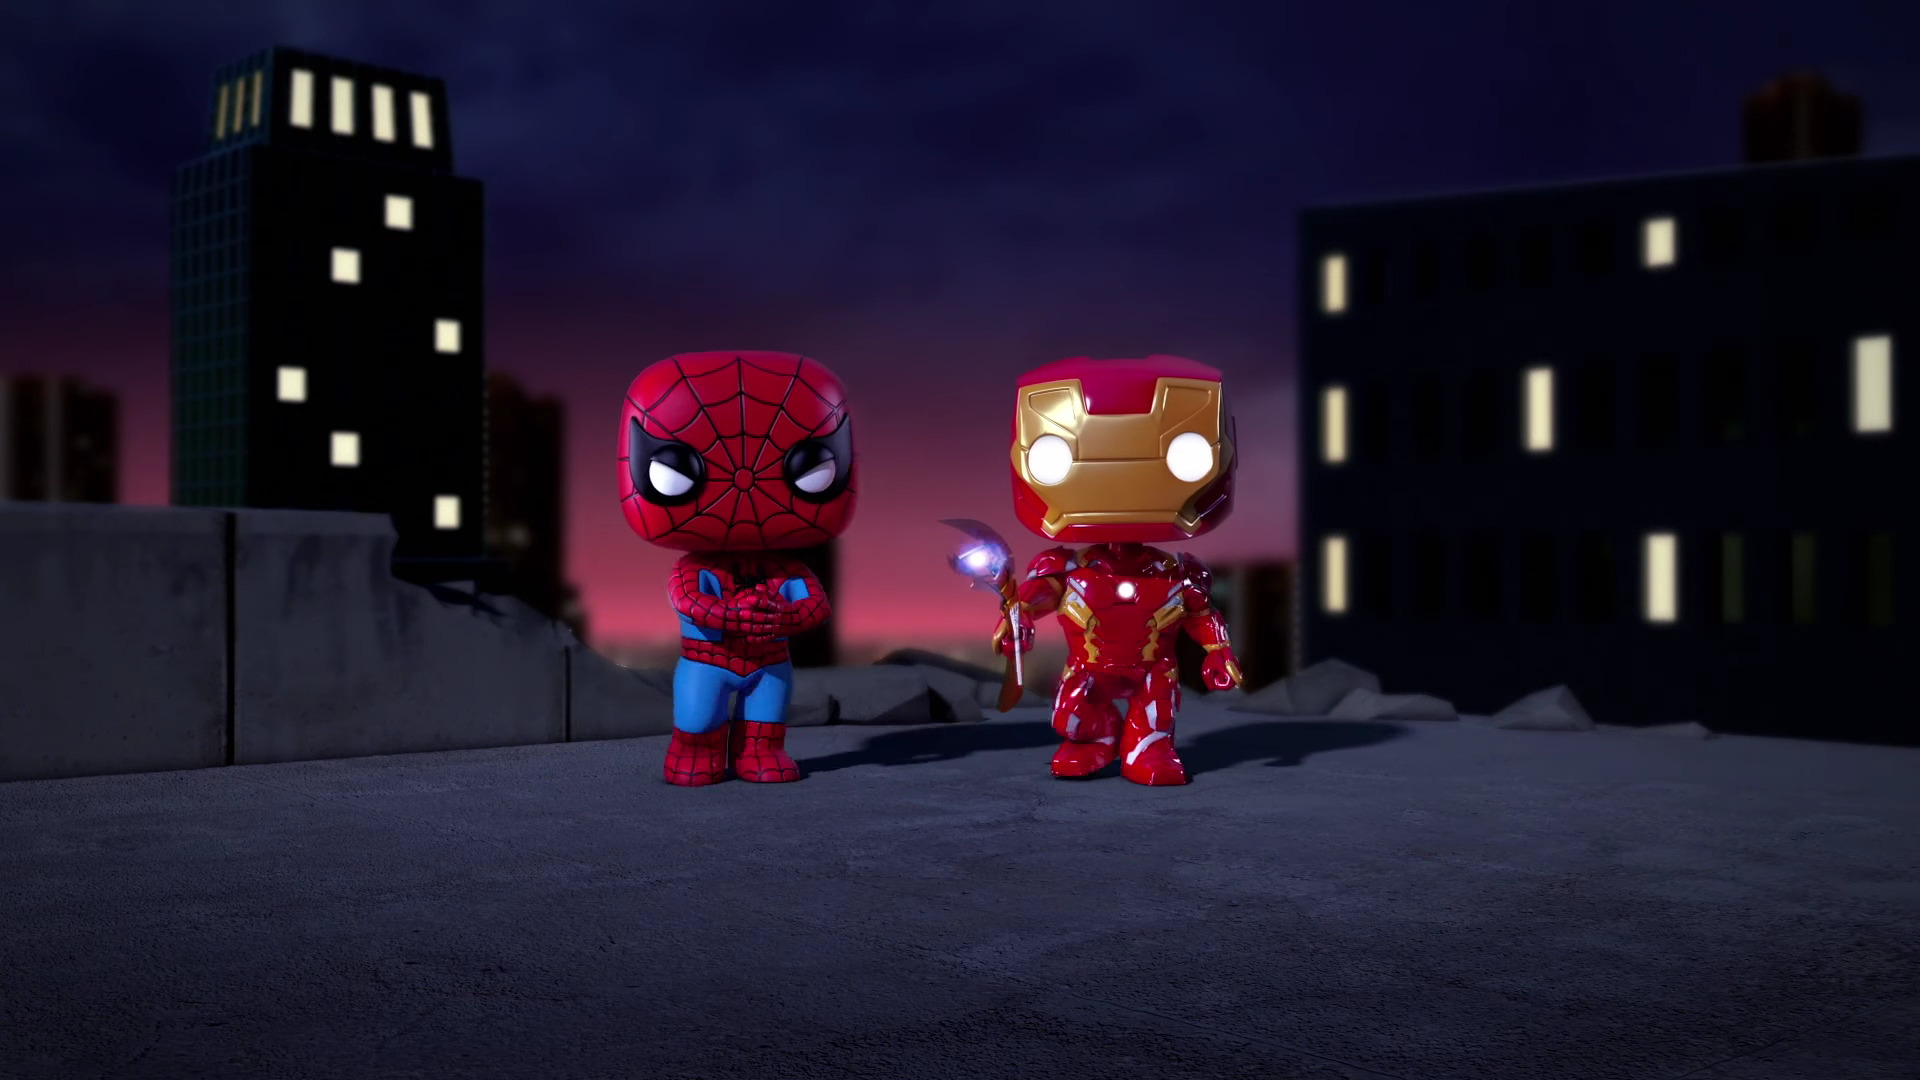 2560x1440 Iron Man And Spiderman Spellbound Animated Movie